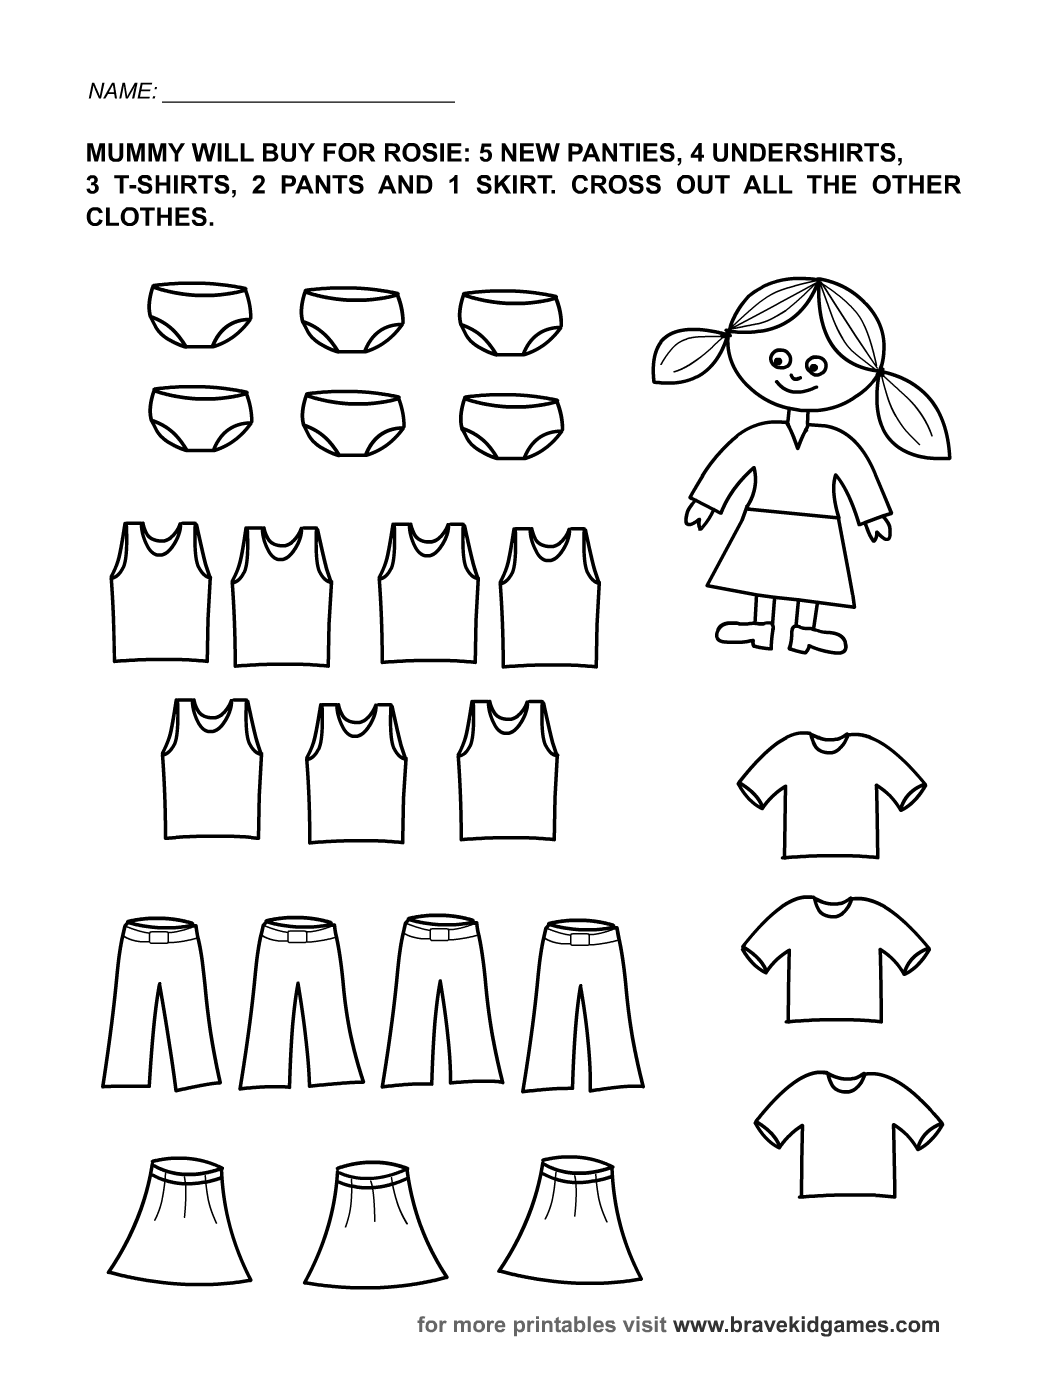 Worksheets Jumpstart Worksheets children homework sheets free worksheets for kids jumpstart jumpstart